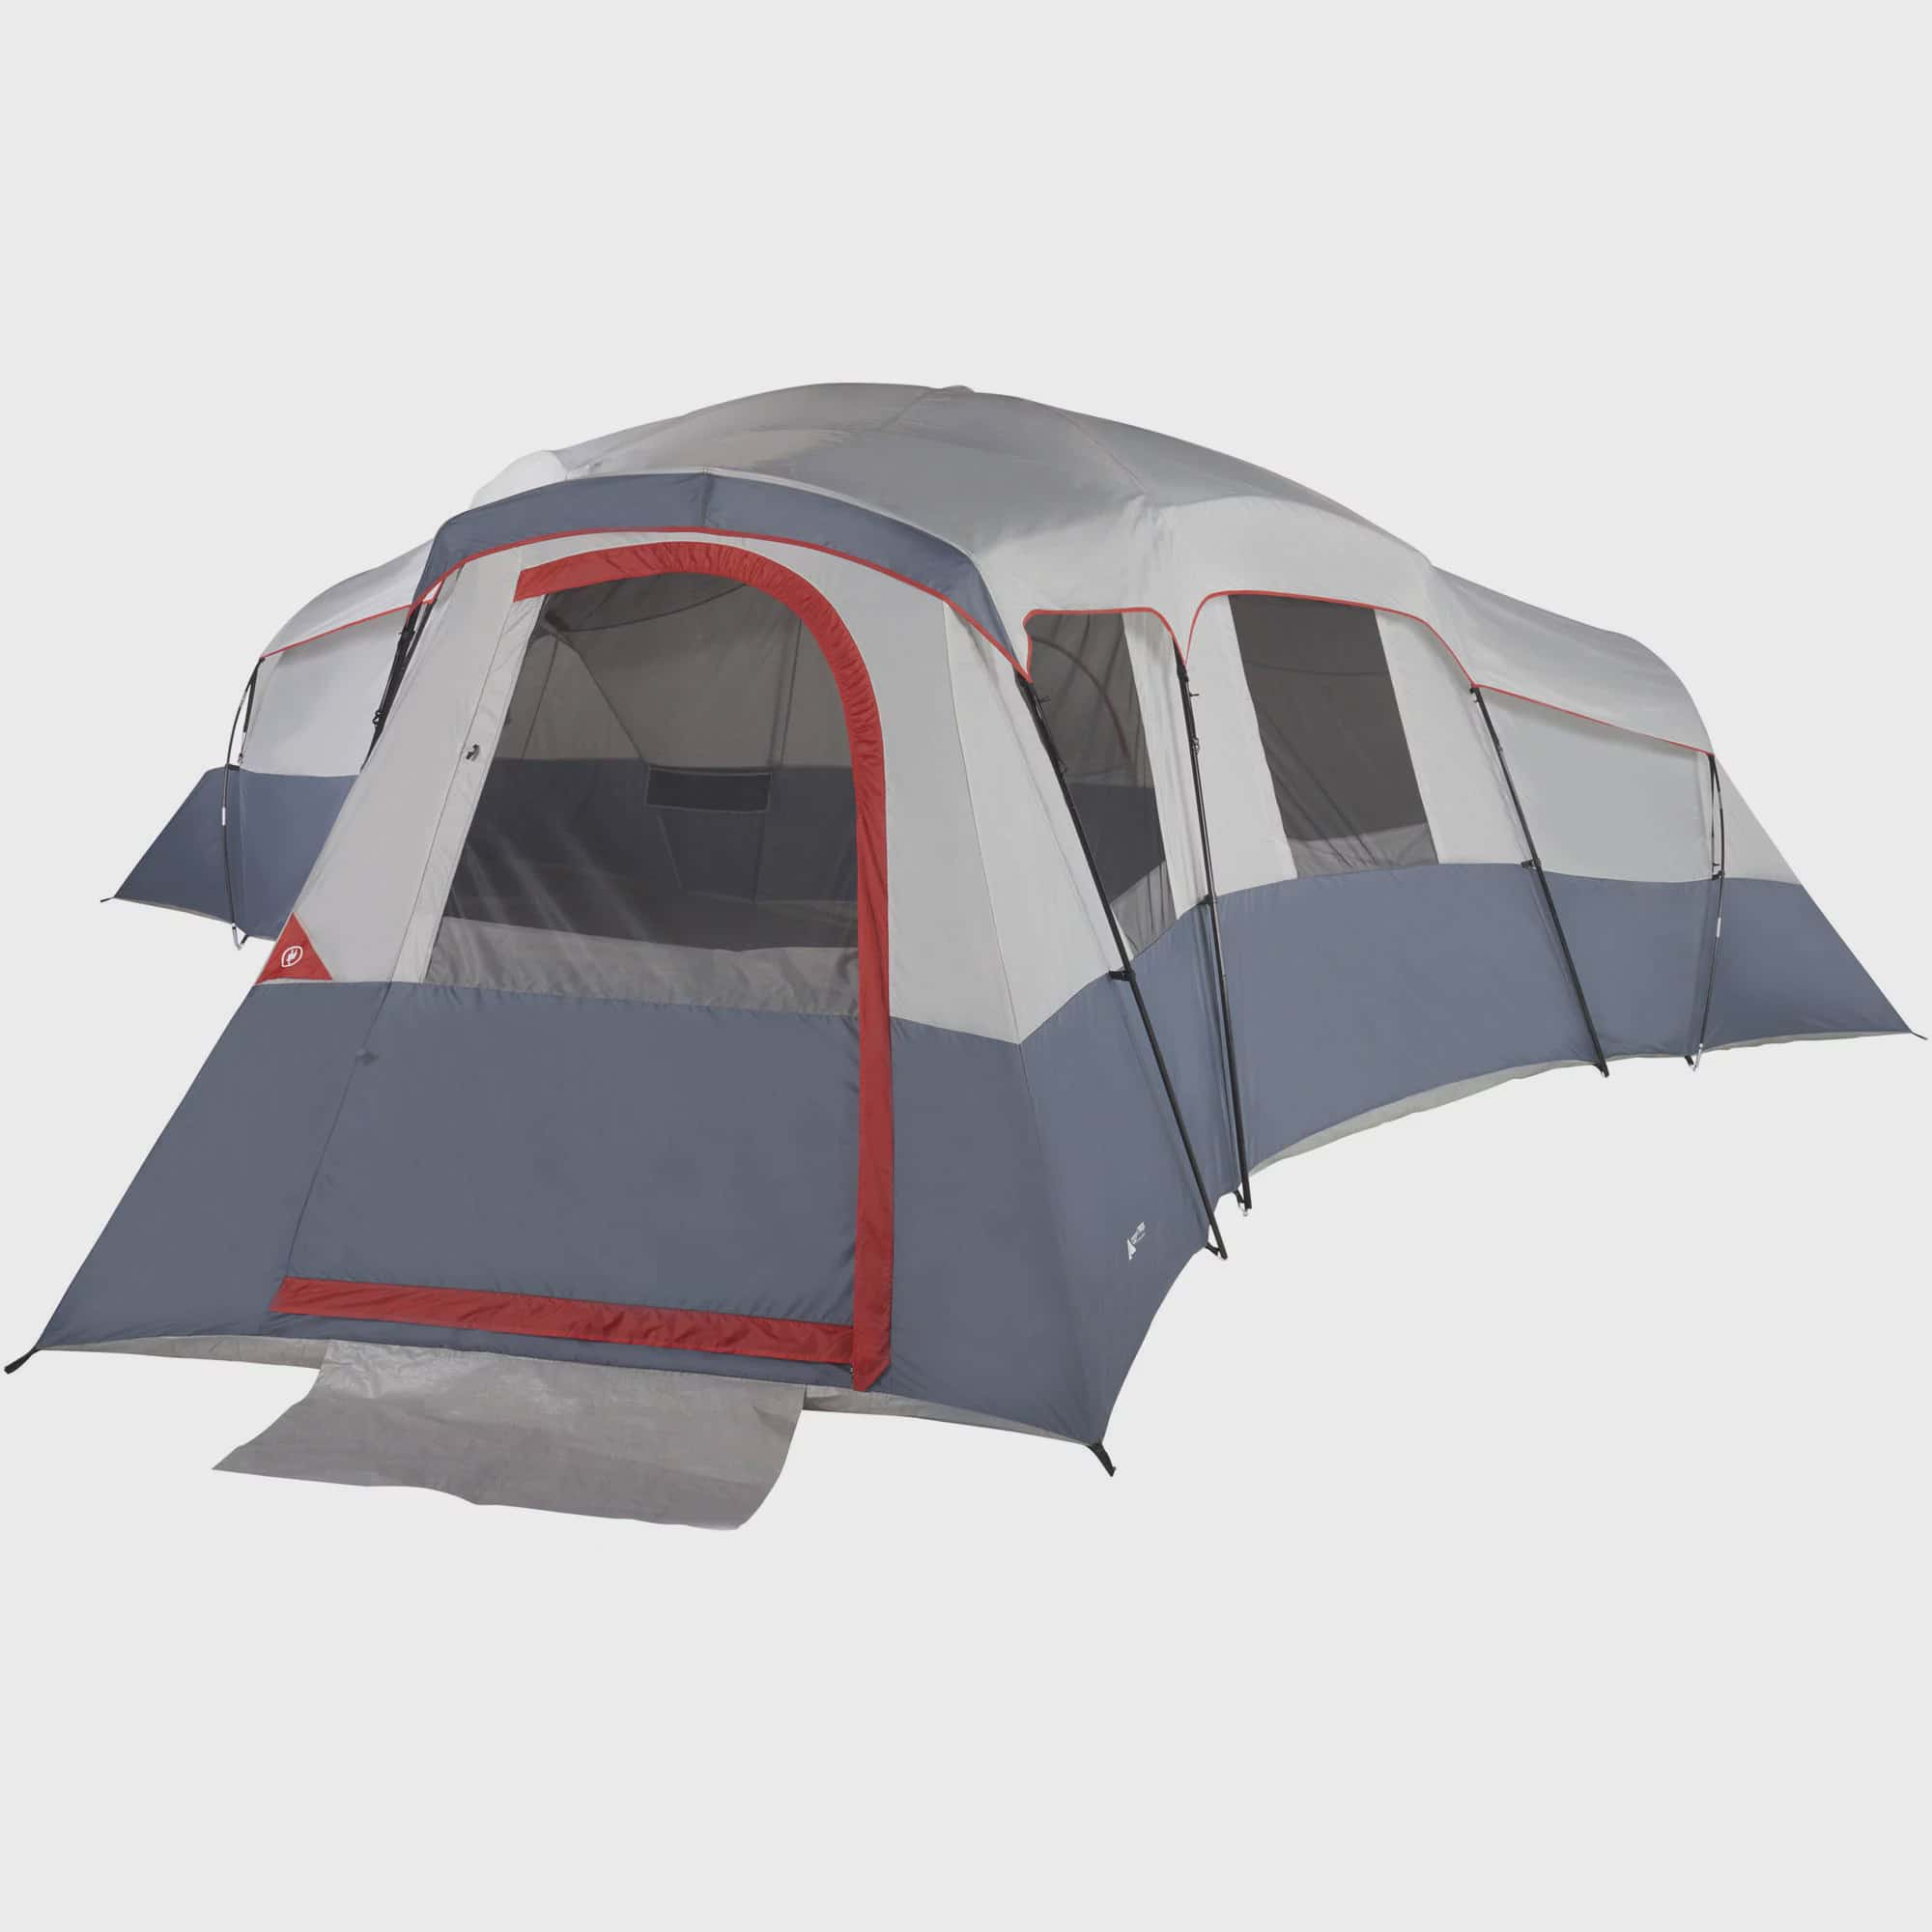 Ozark Trail 20-Person 4-Room Cabin Tent with Mud Mat by Campex (BD) Limited